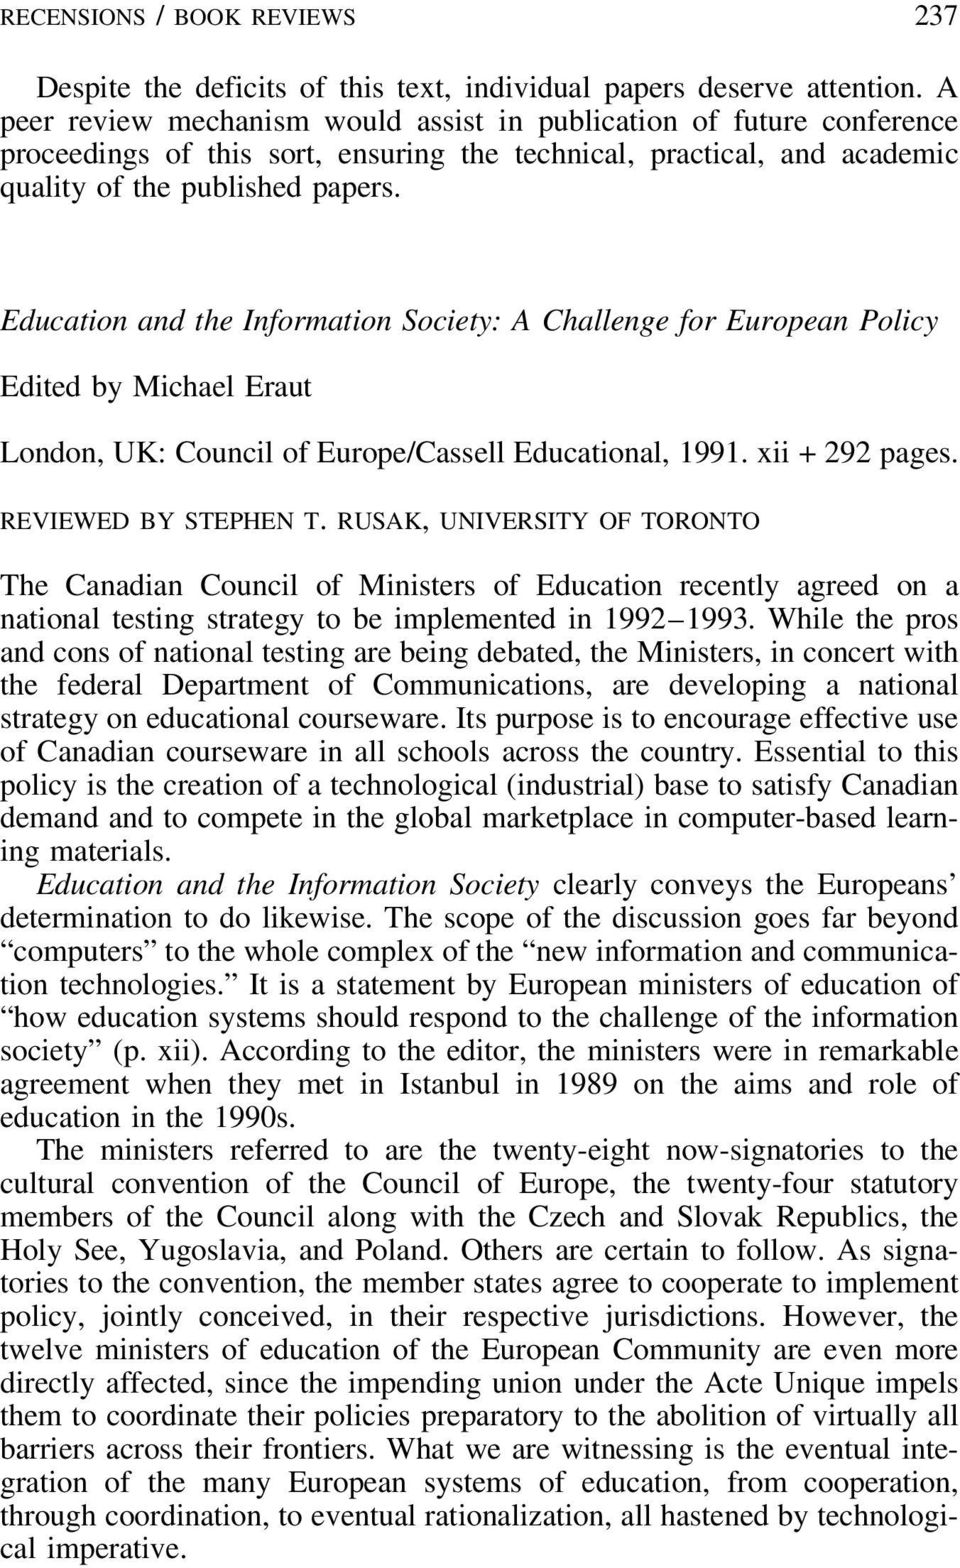 Education and the Information Society: A Challenge for European Policy Edited by Michael Eraut London, UK: Council of Europe/Cassell Educational, 1991. xii + 292 pages. REVIEWED BY STEPHEN T.